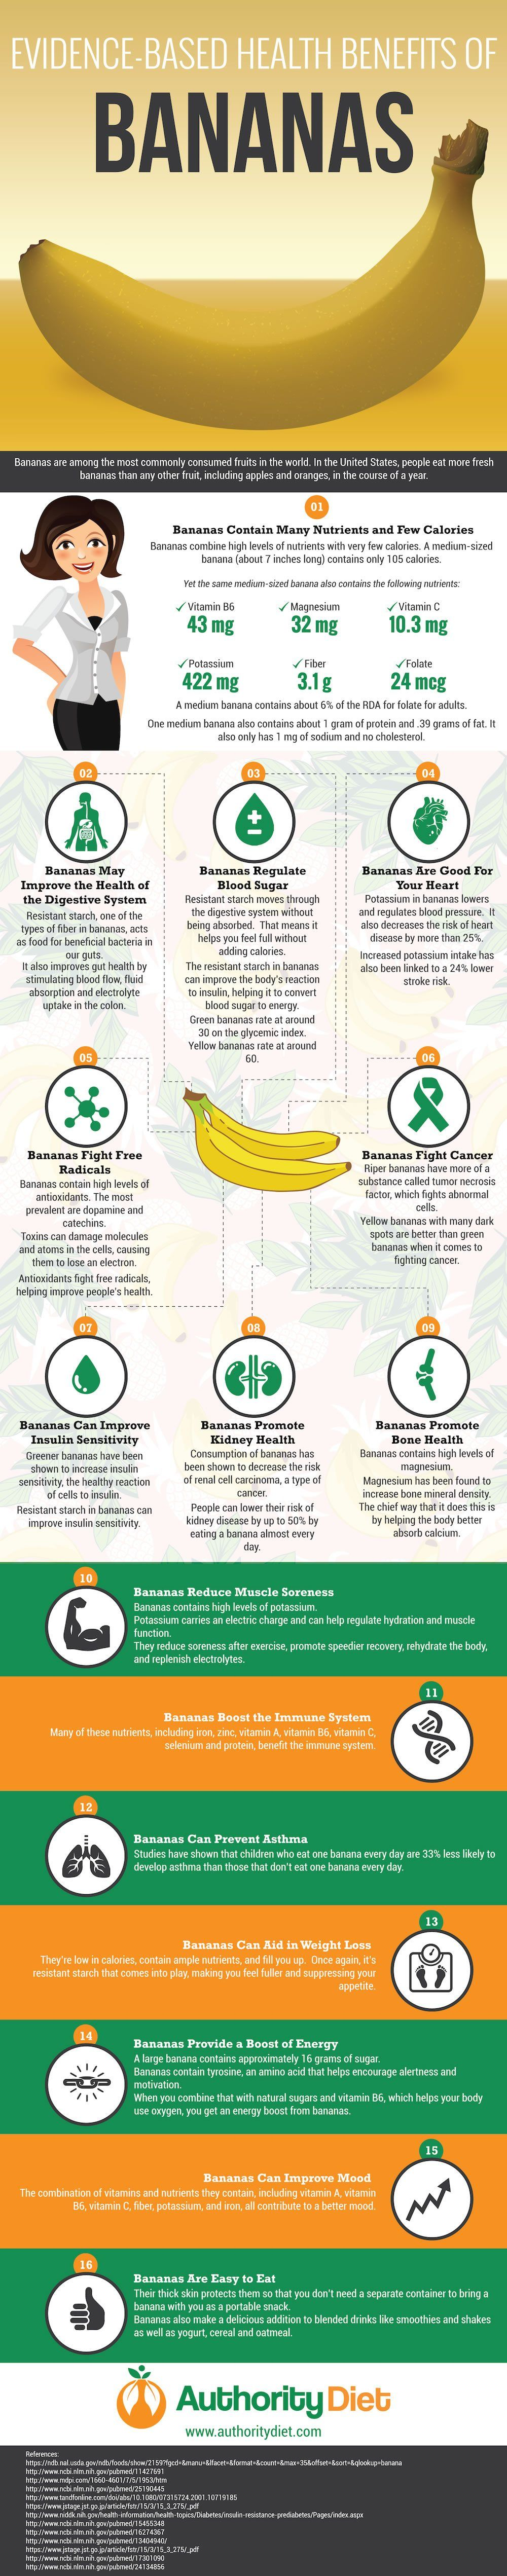 Evidence-Based Health Benefits Of Bananas #Infographic